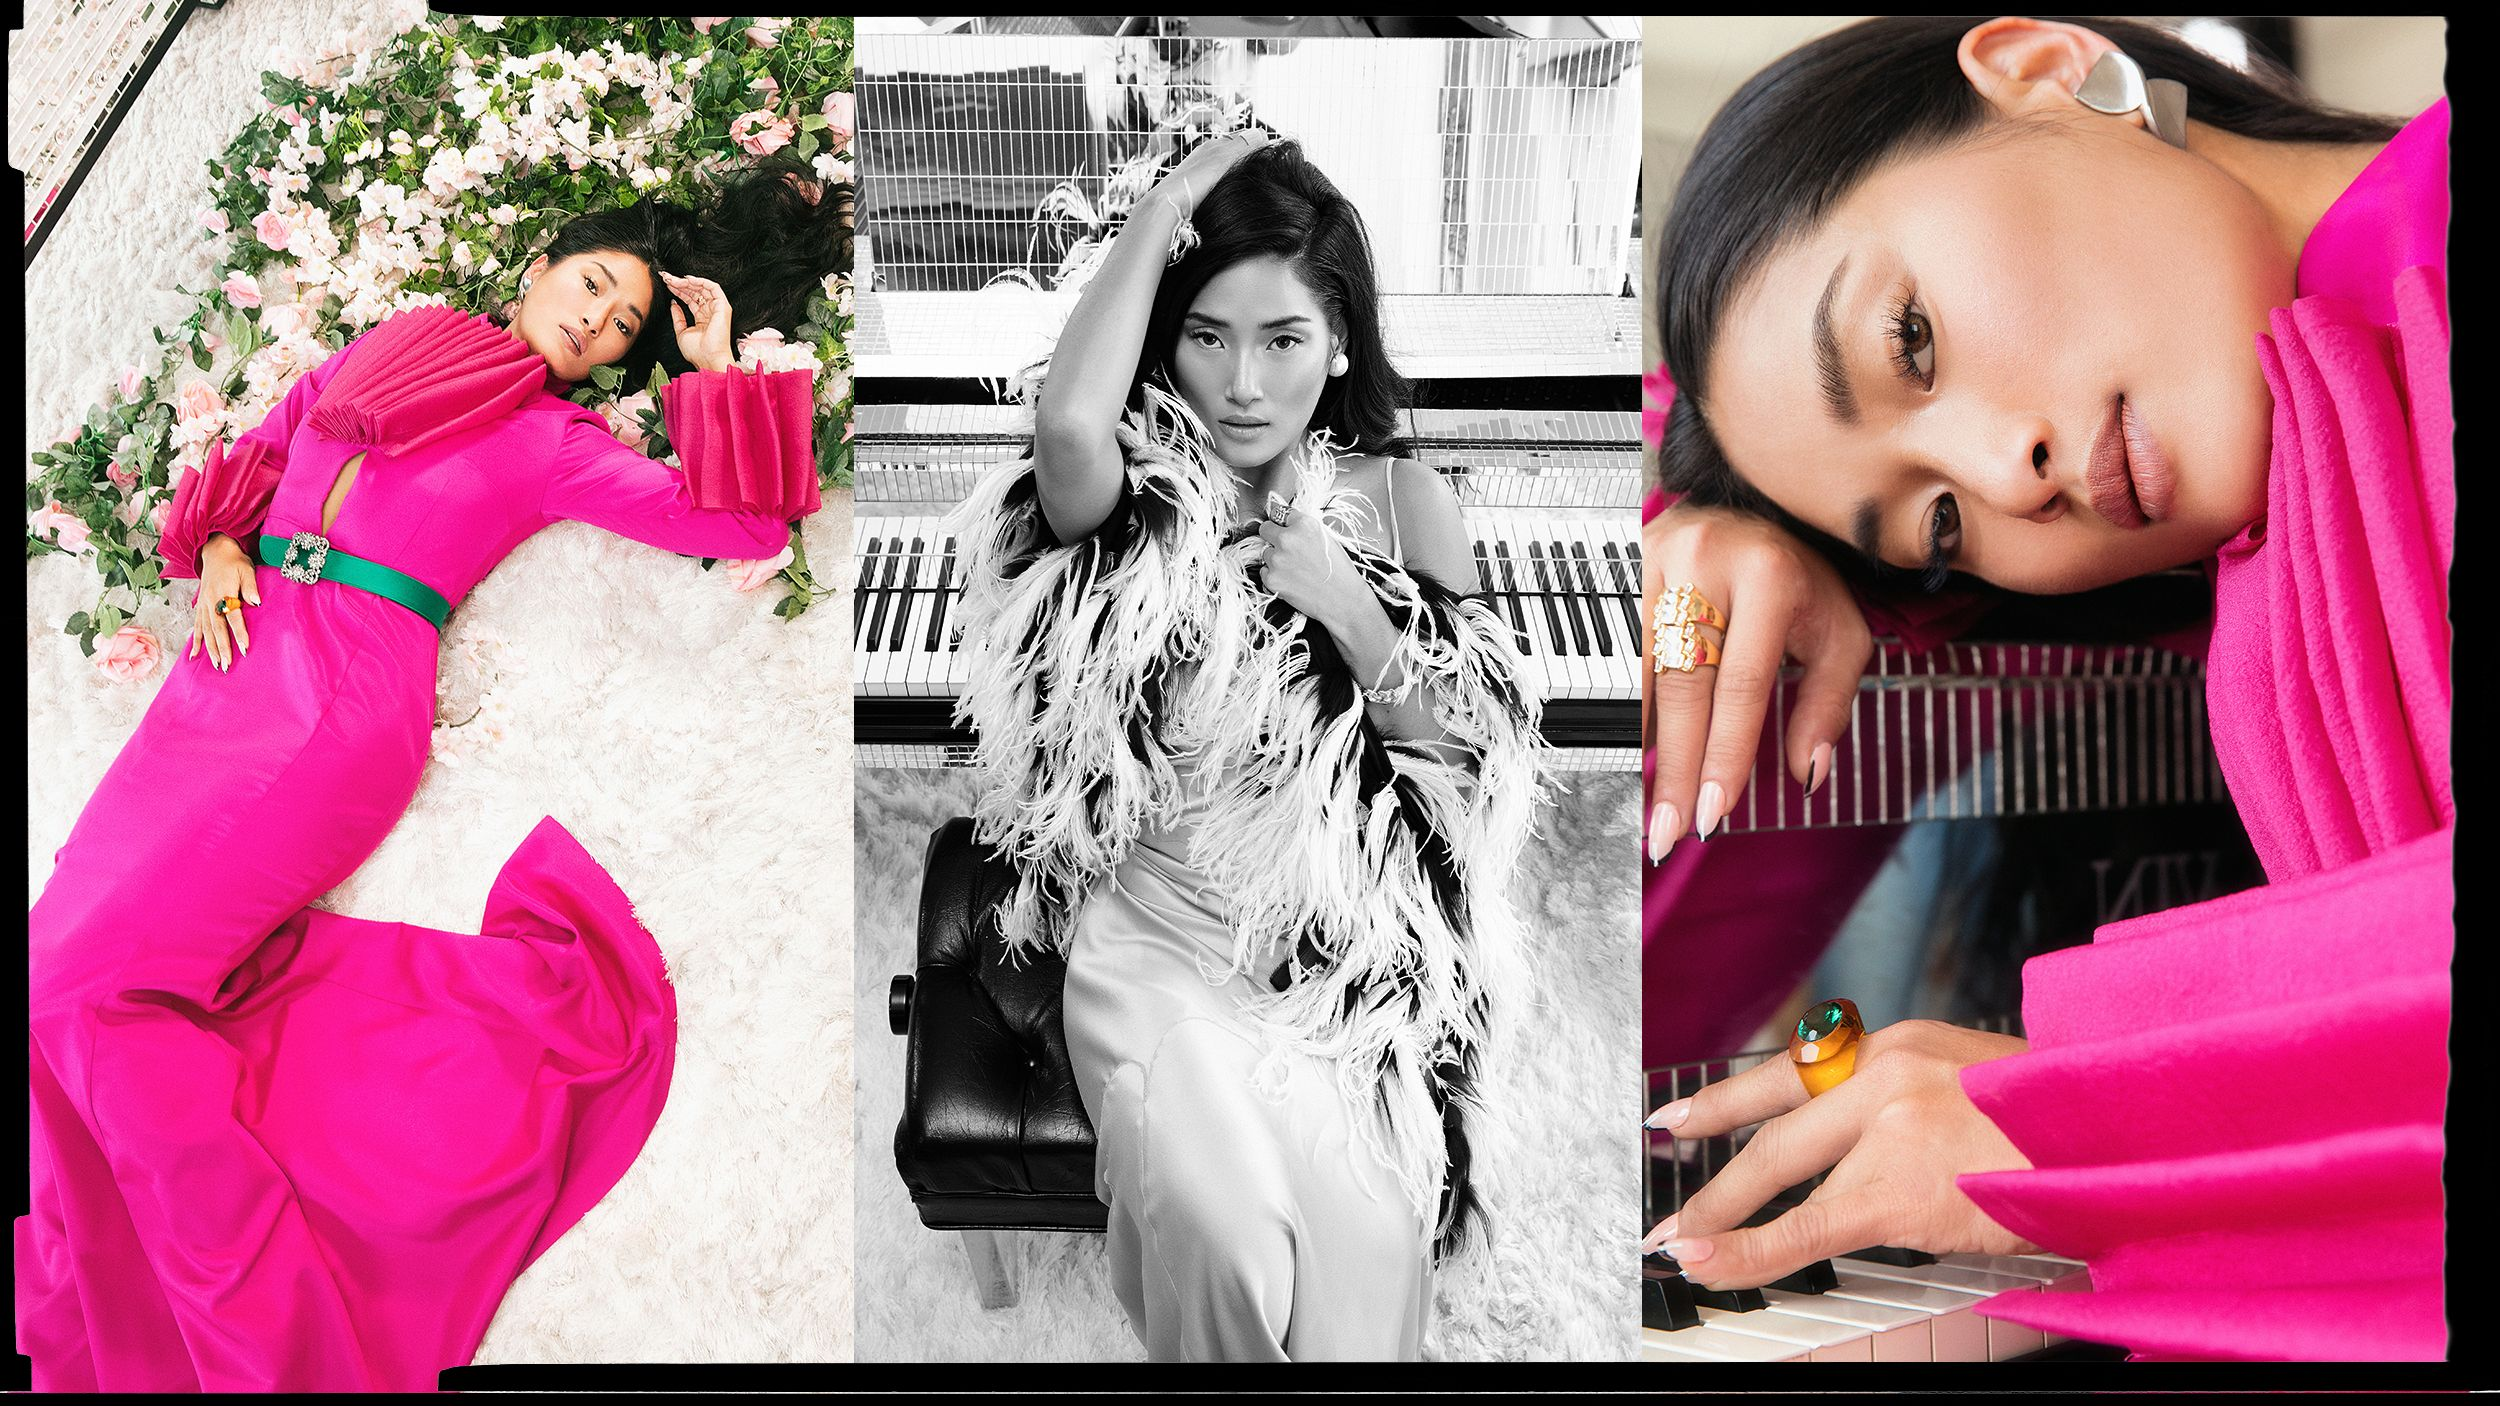 A Peek Inside the Couture-Filled Closet of the Pianist Who Stole the Spotlight From Cardi B